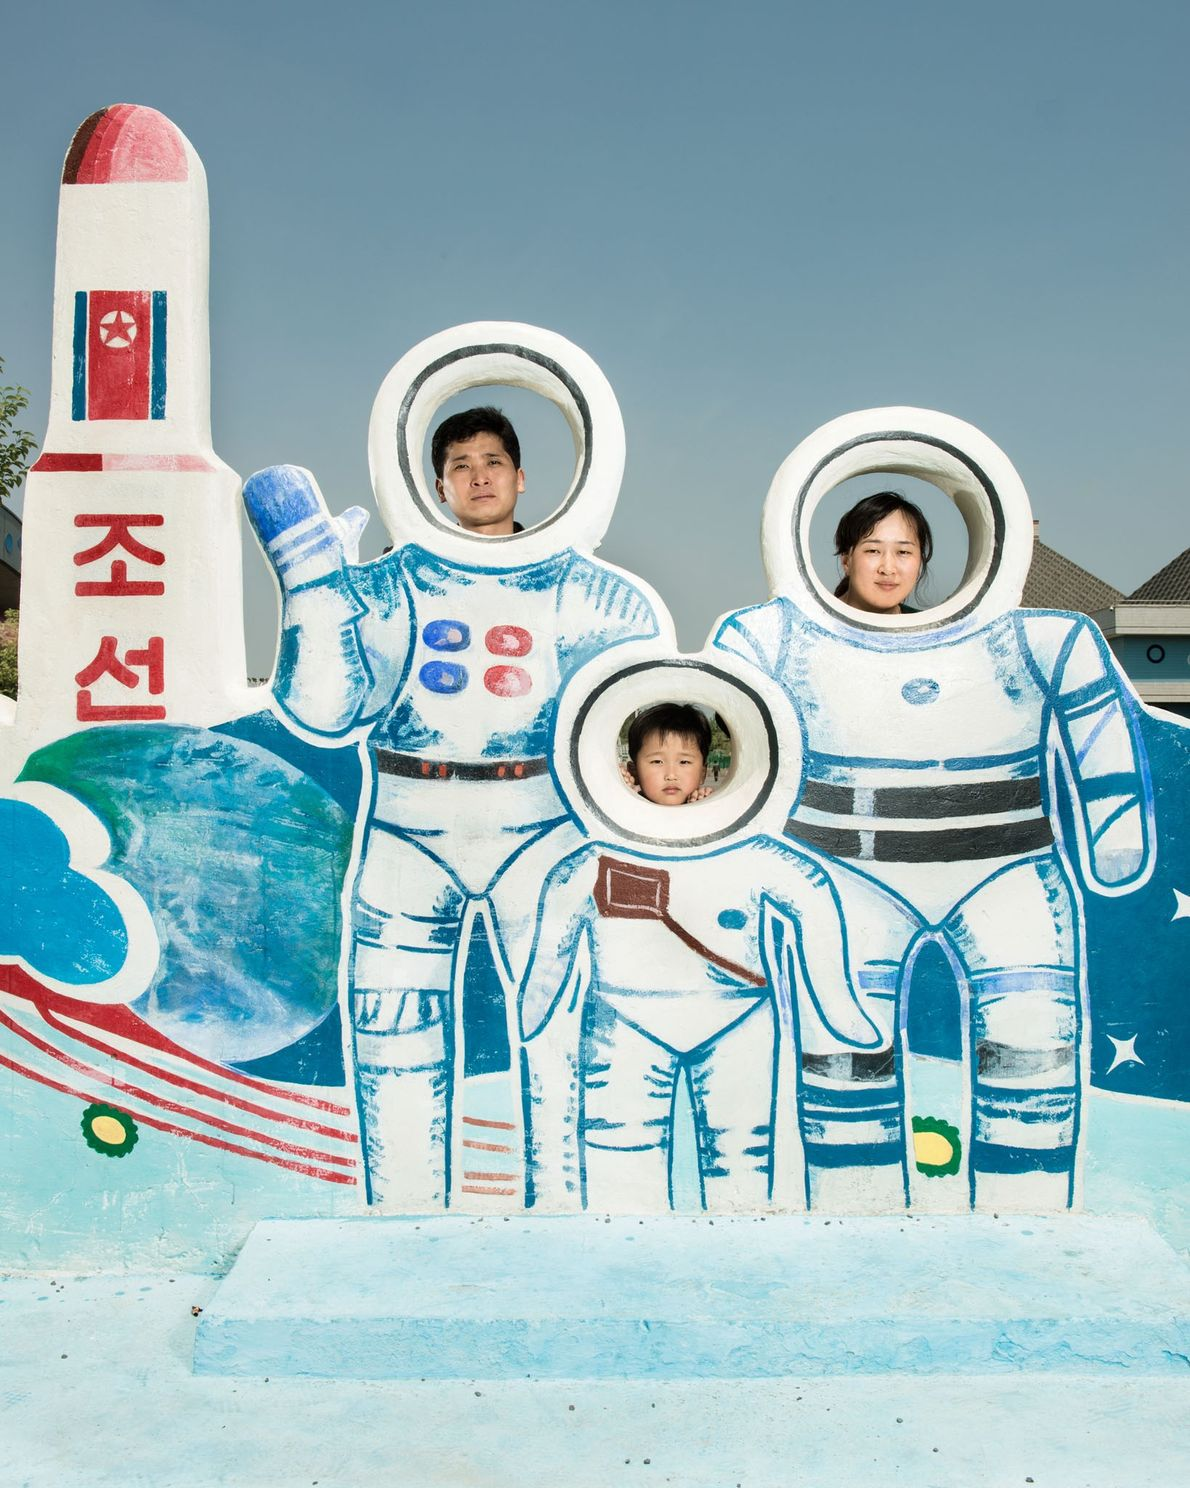 A family poses behind a tribute to the North Korean space program at a water park ...